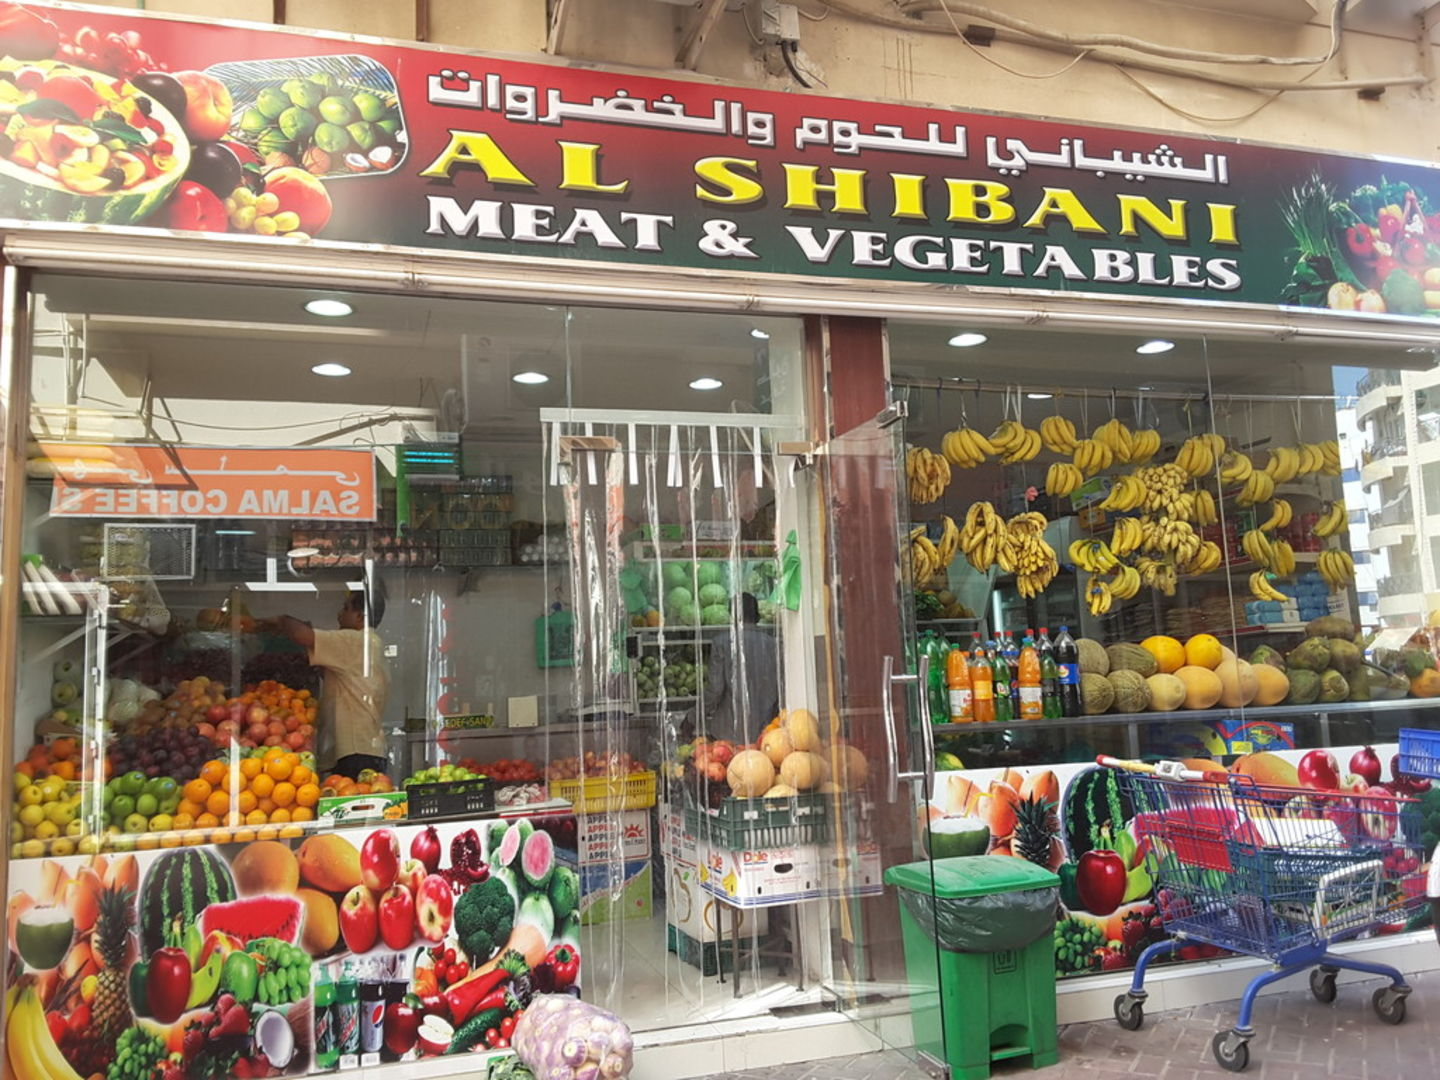 HiDubai-business-al-shibani-meat-vegetables-b2b-services-food-stuff-trading-al-murar-dubai-2